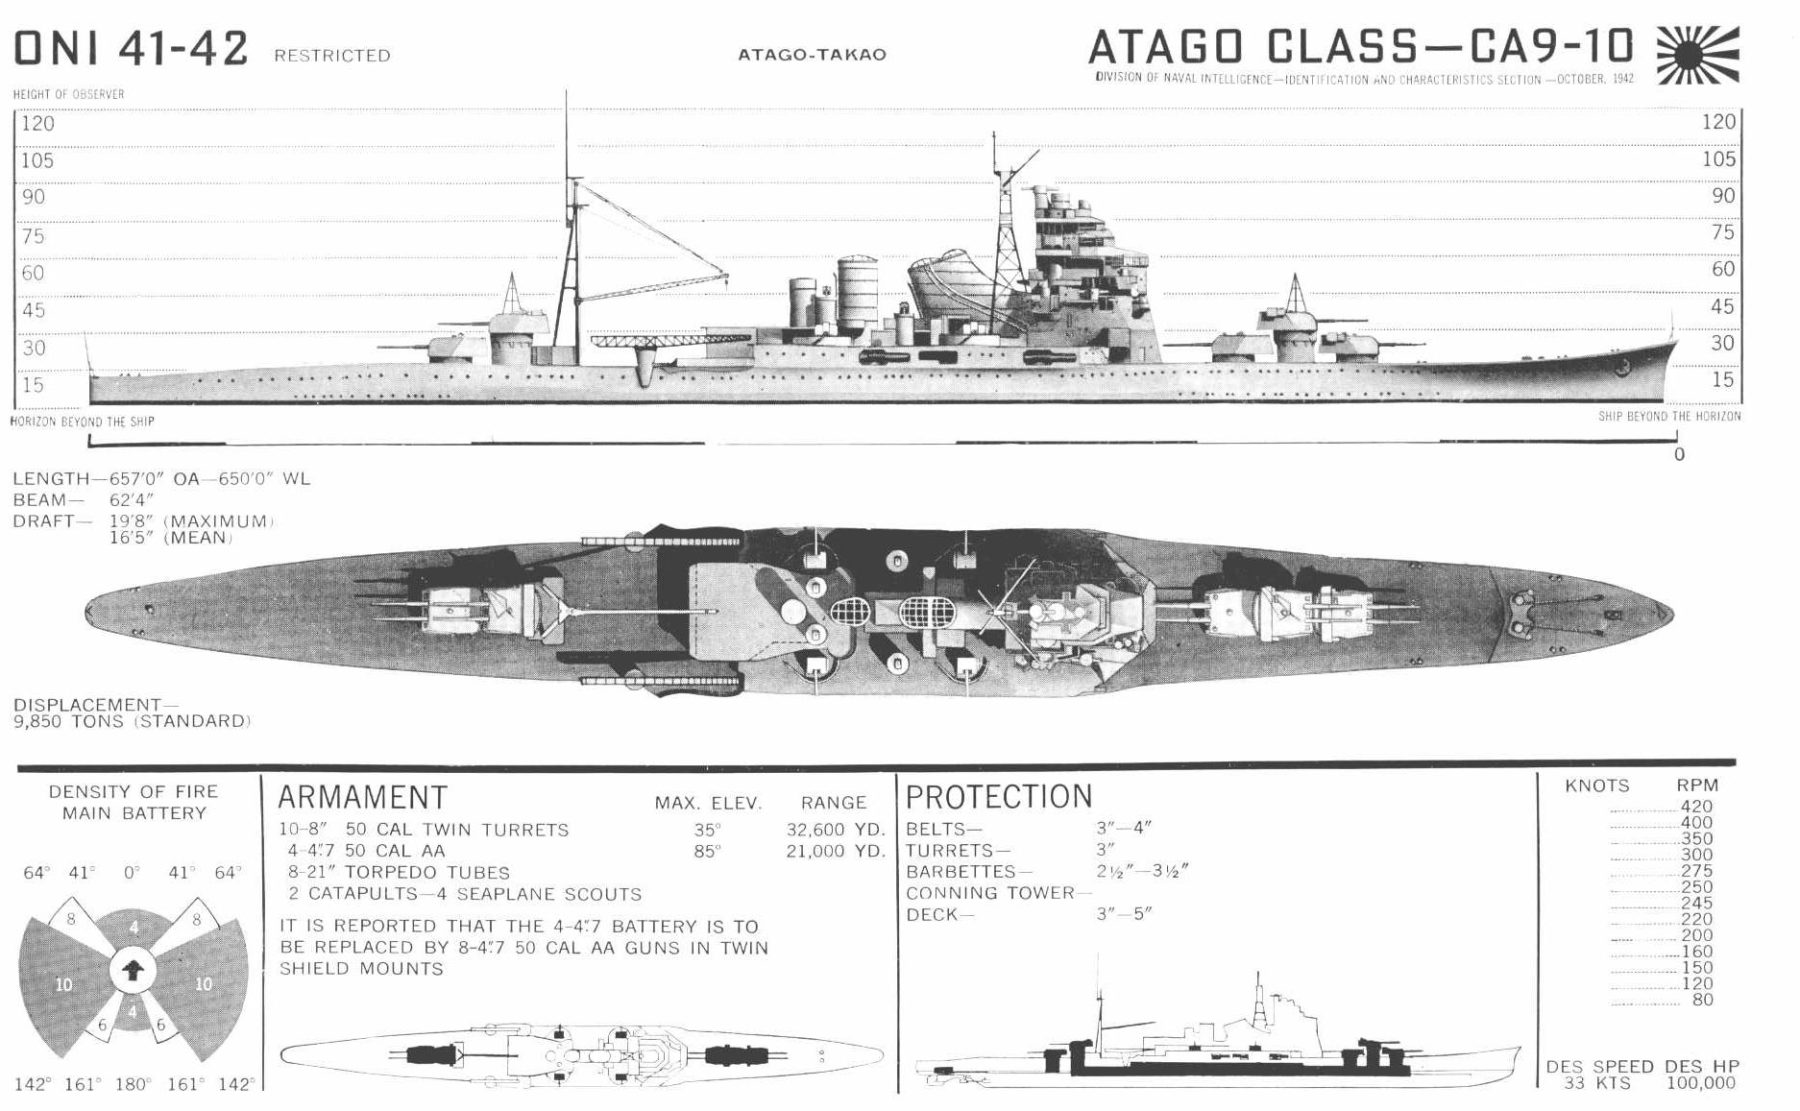 ONI detailed plate (USN intel) about IJN Atago during ww2.